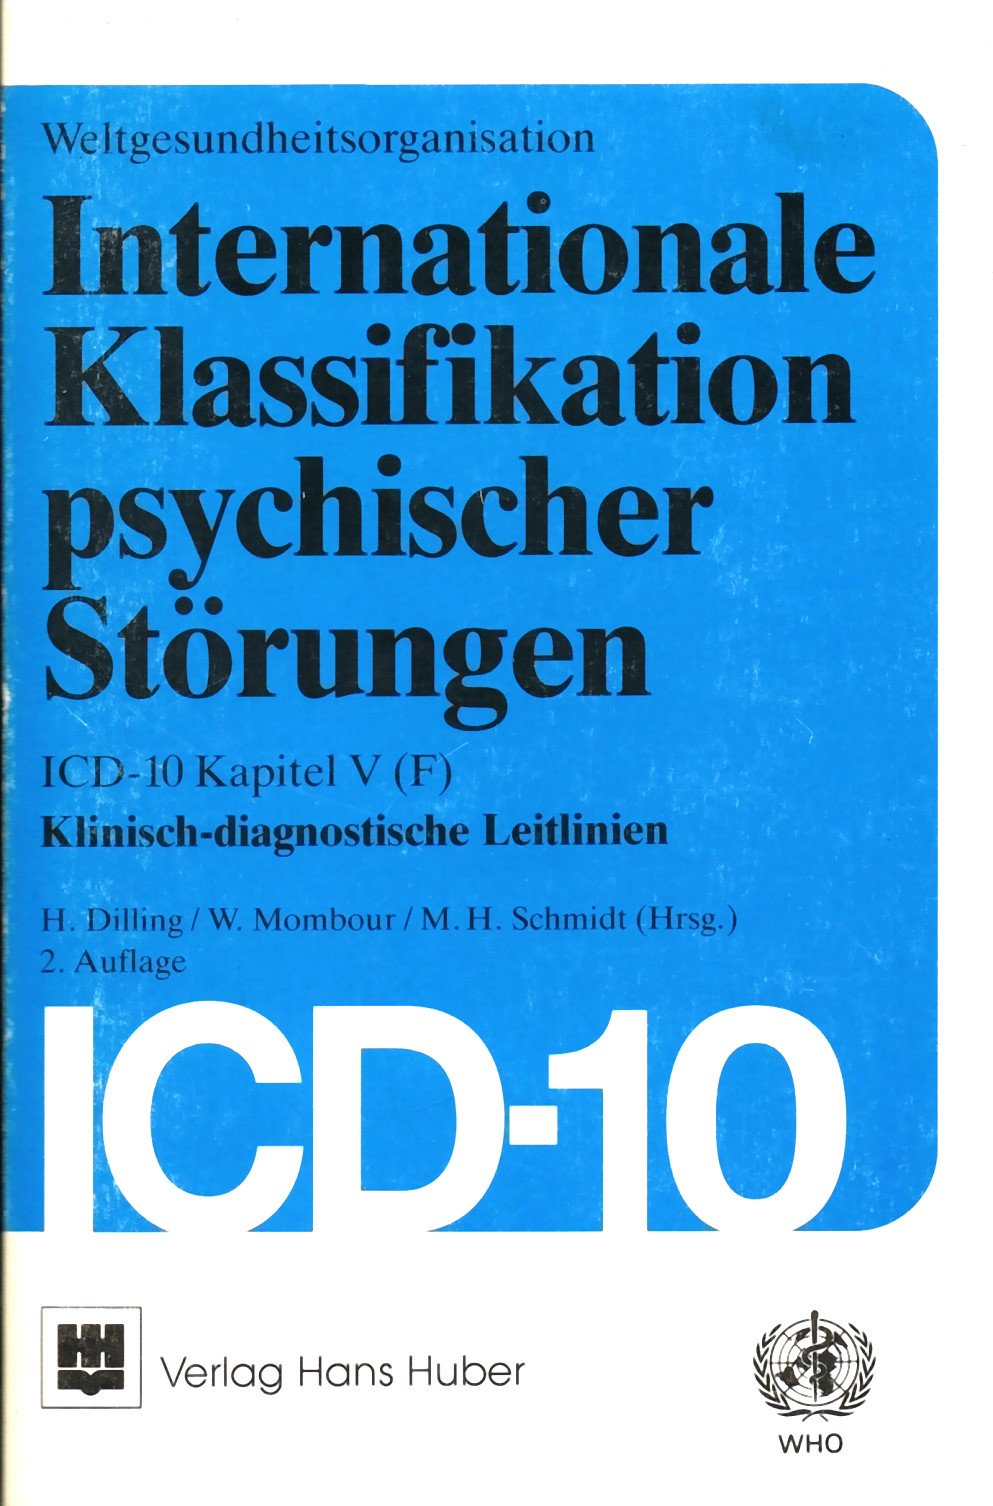 Internationale Klassifikation psychischer Störungen: ICD-10 Kapitel V (F). Klinisch-diagnostische Leitlinien